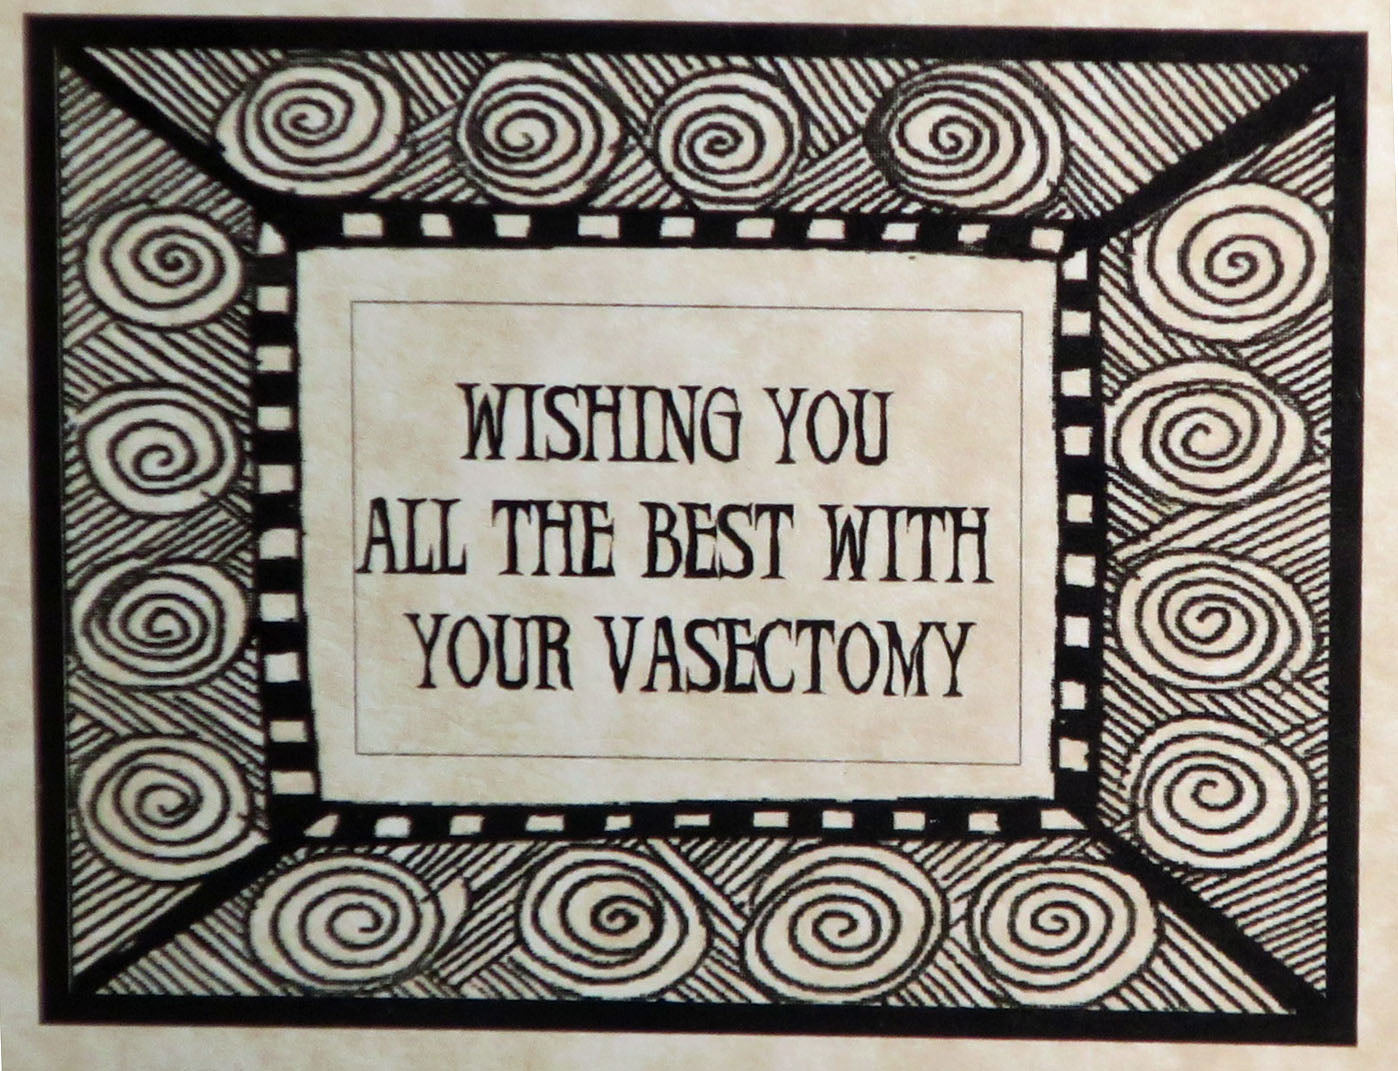 wishing you all the best on your vasectomy card